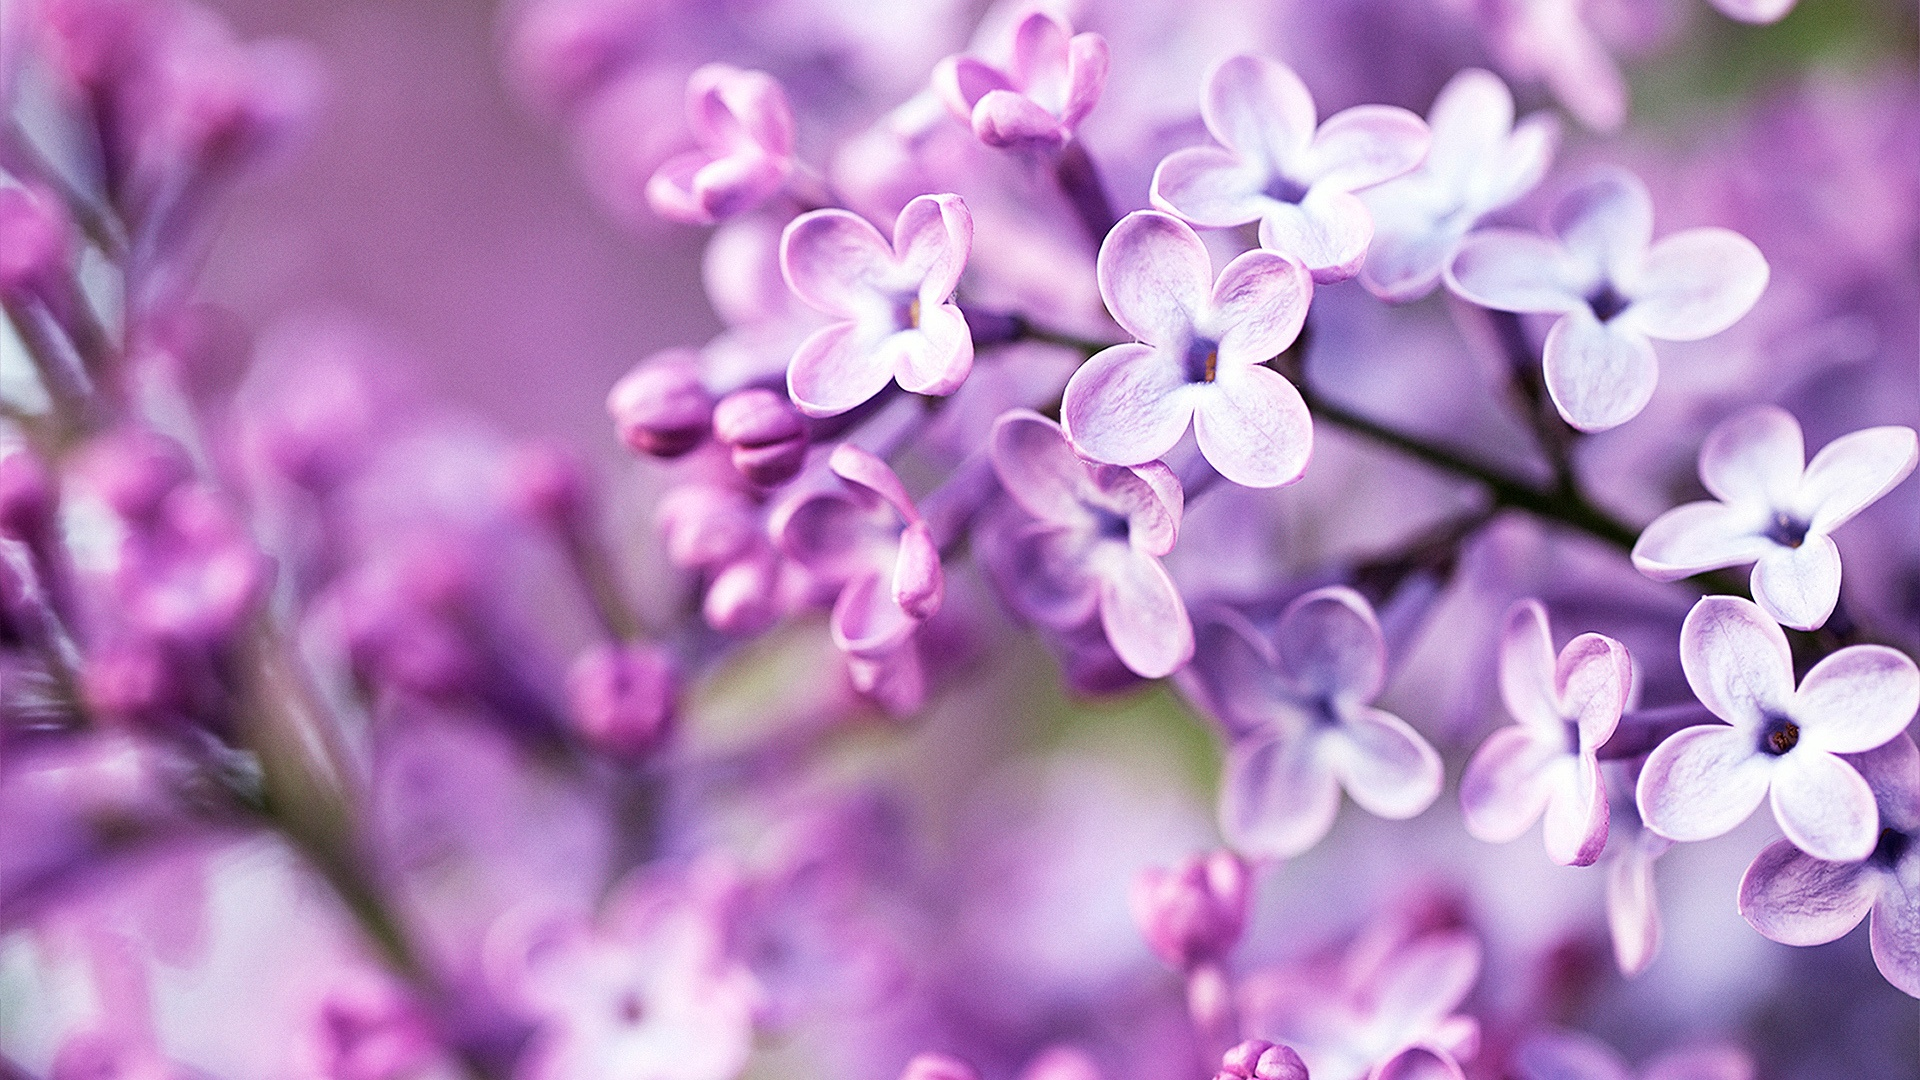 Spring purple flowers wallpapers in jpg format for free download spring purple flowers wallpapers mightylinksfo